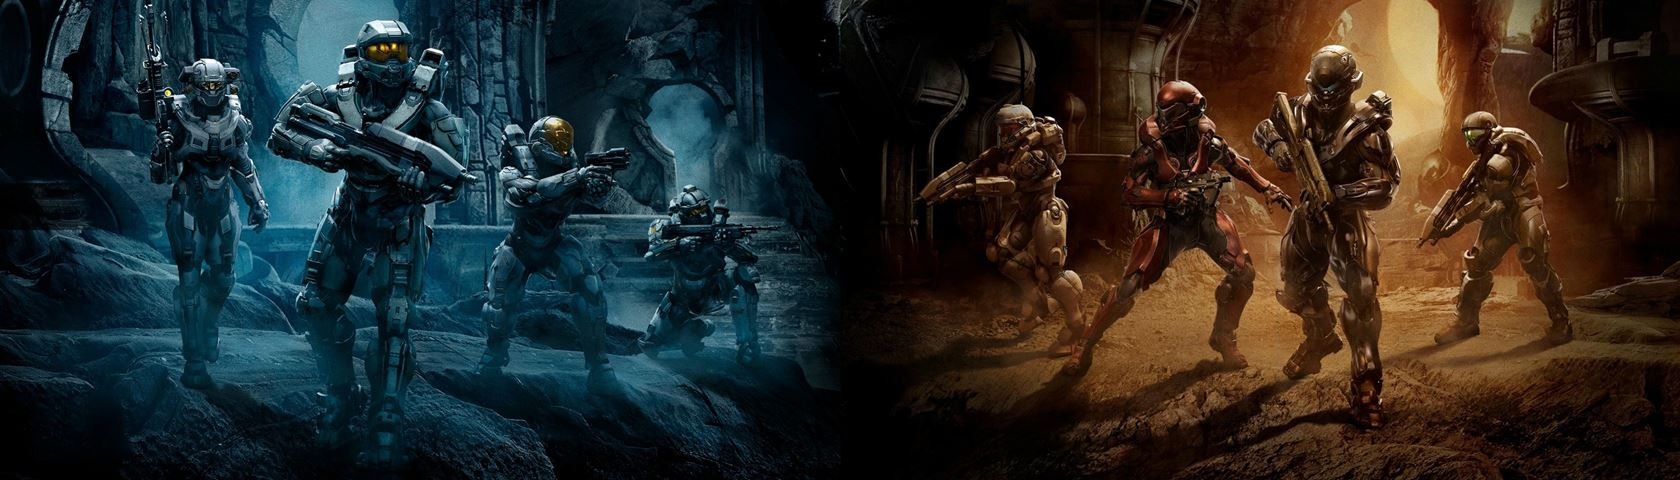 Halo 5 Guardians Dual Screen Images Wallpaperfusion By